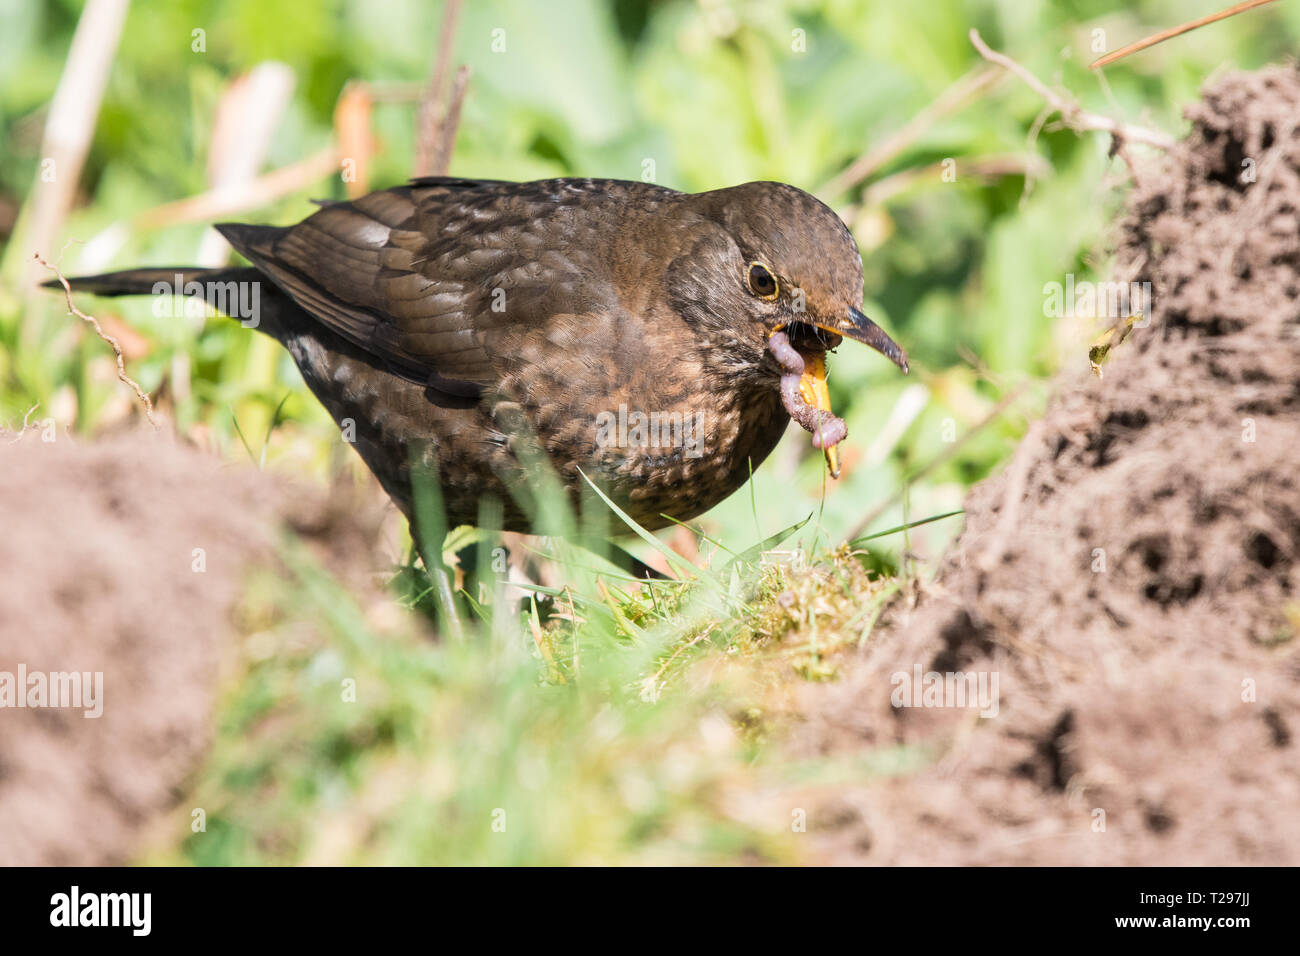 Stirlingshire, Scotland, UK - 31 March 2019: UK weather - a female blackbird swallows a large juicy worm as she takes advantage of  freshly dug soil in a Stirlingshire garden on a beautiful warm spring day Credit: Kay Roxby/Alamy Live News Stock Photo